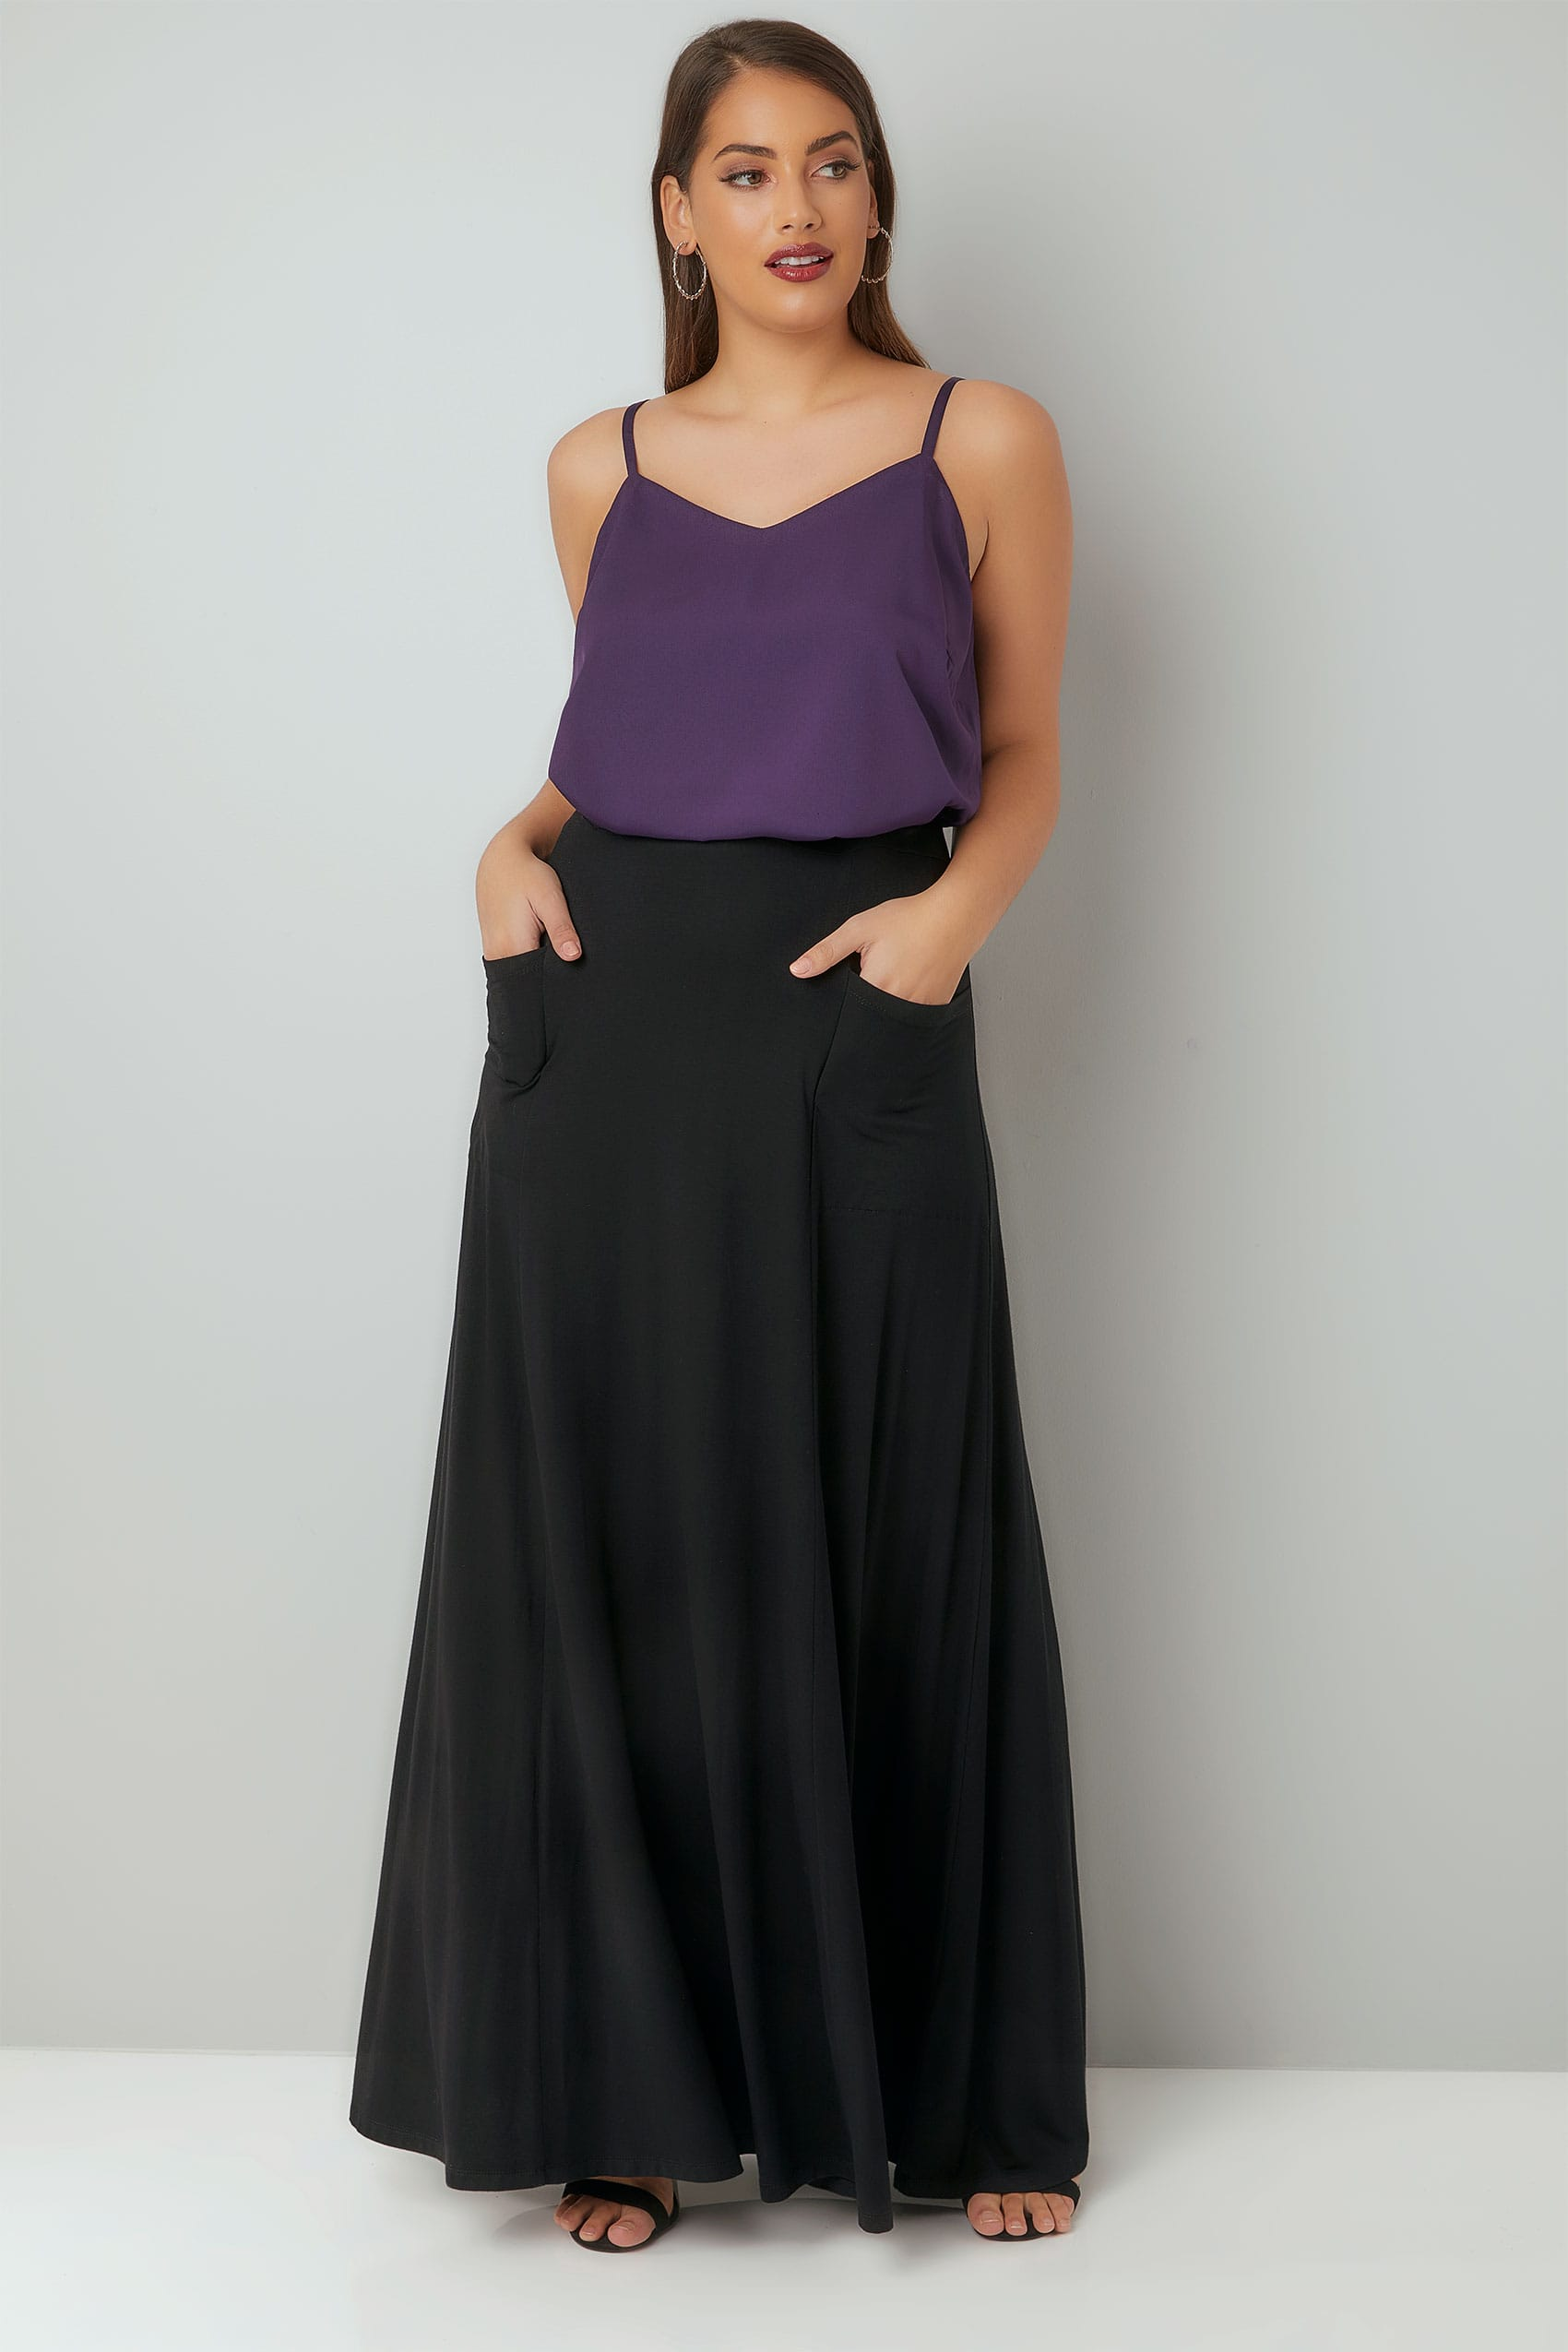 Black Maxi Jersey Skirt With Pockets, Plus size 16 to 36